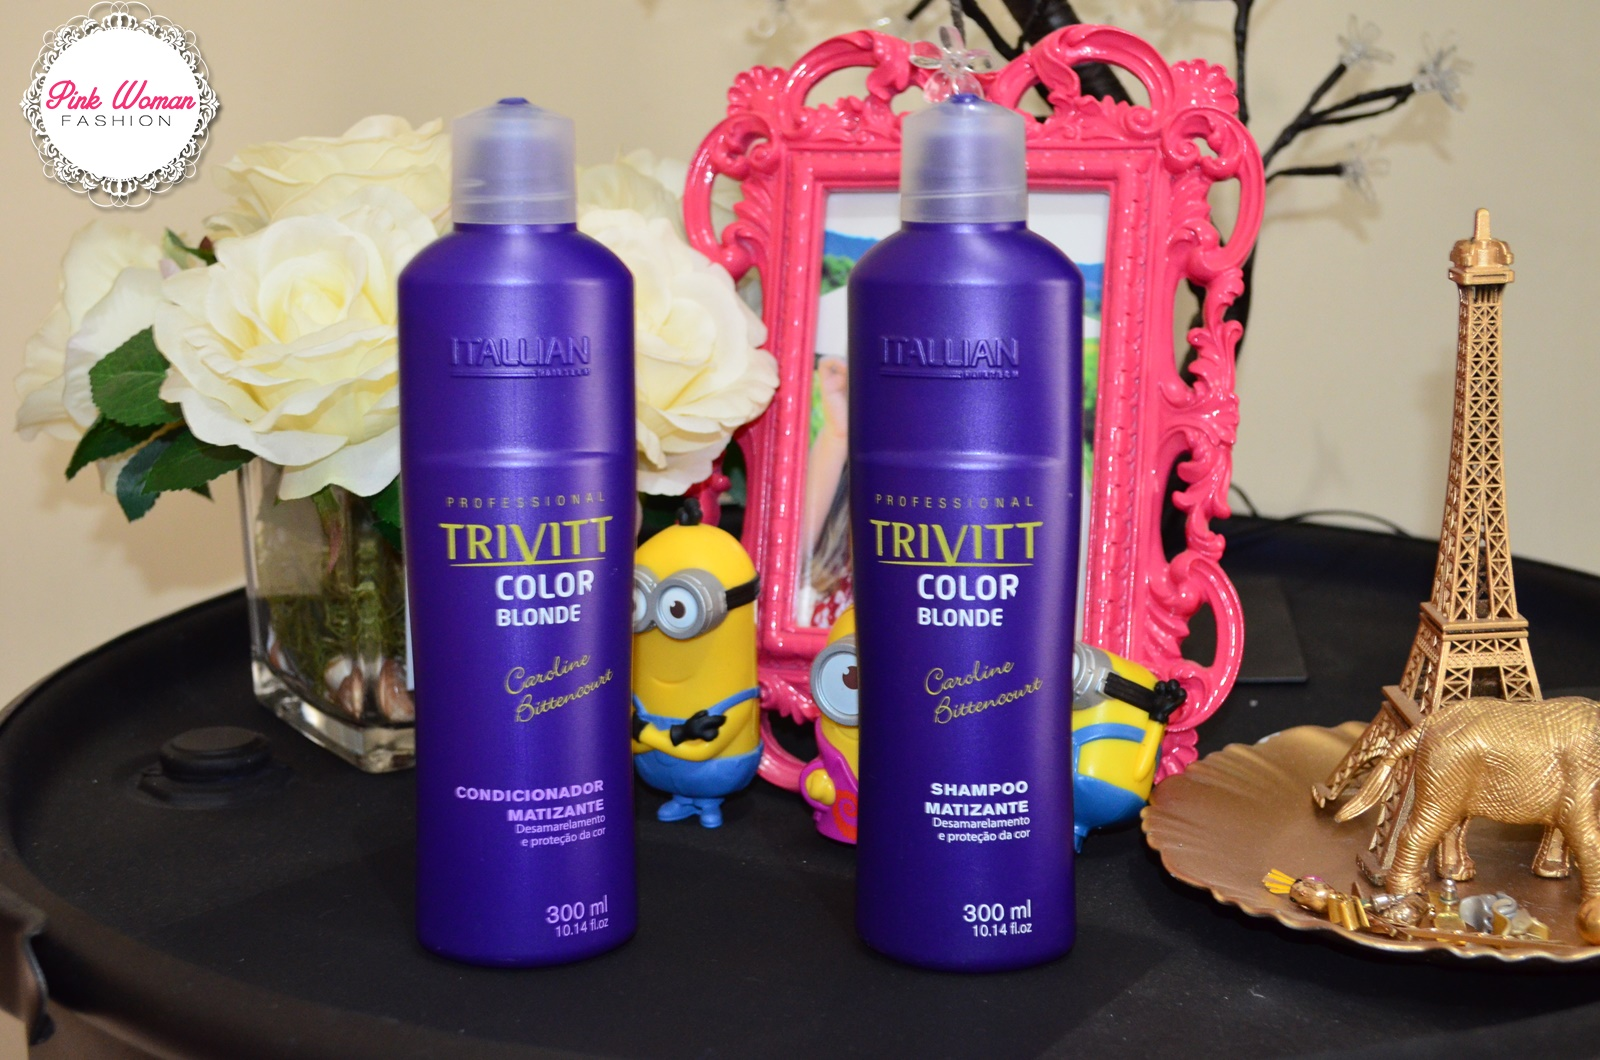 Shampoo e condicionador TRIVITT color blond - itallian hairtech